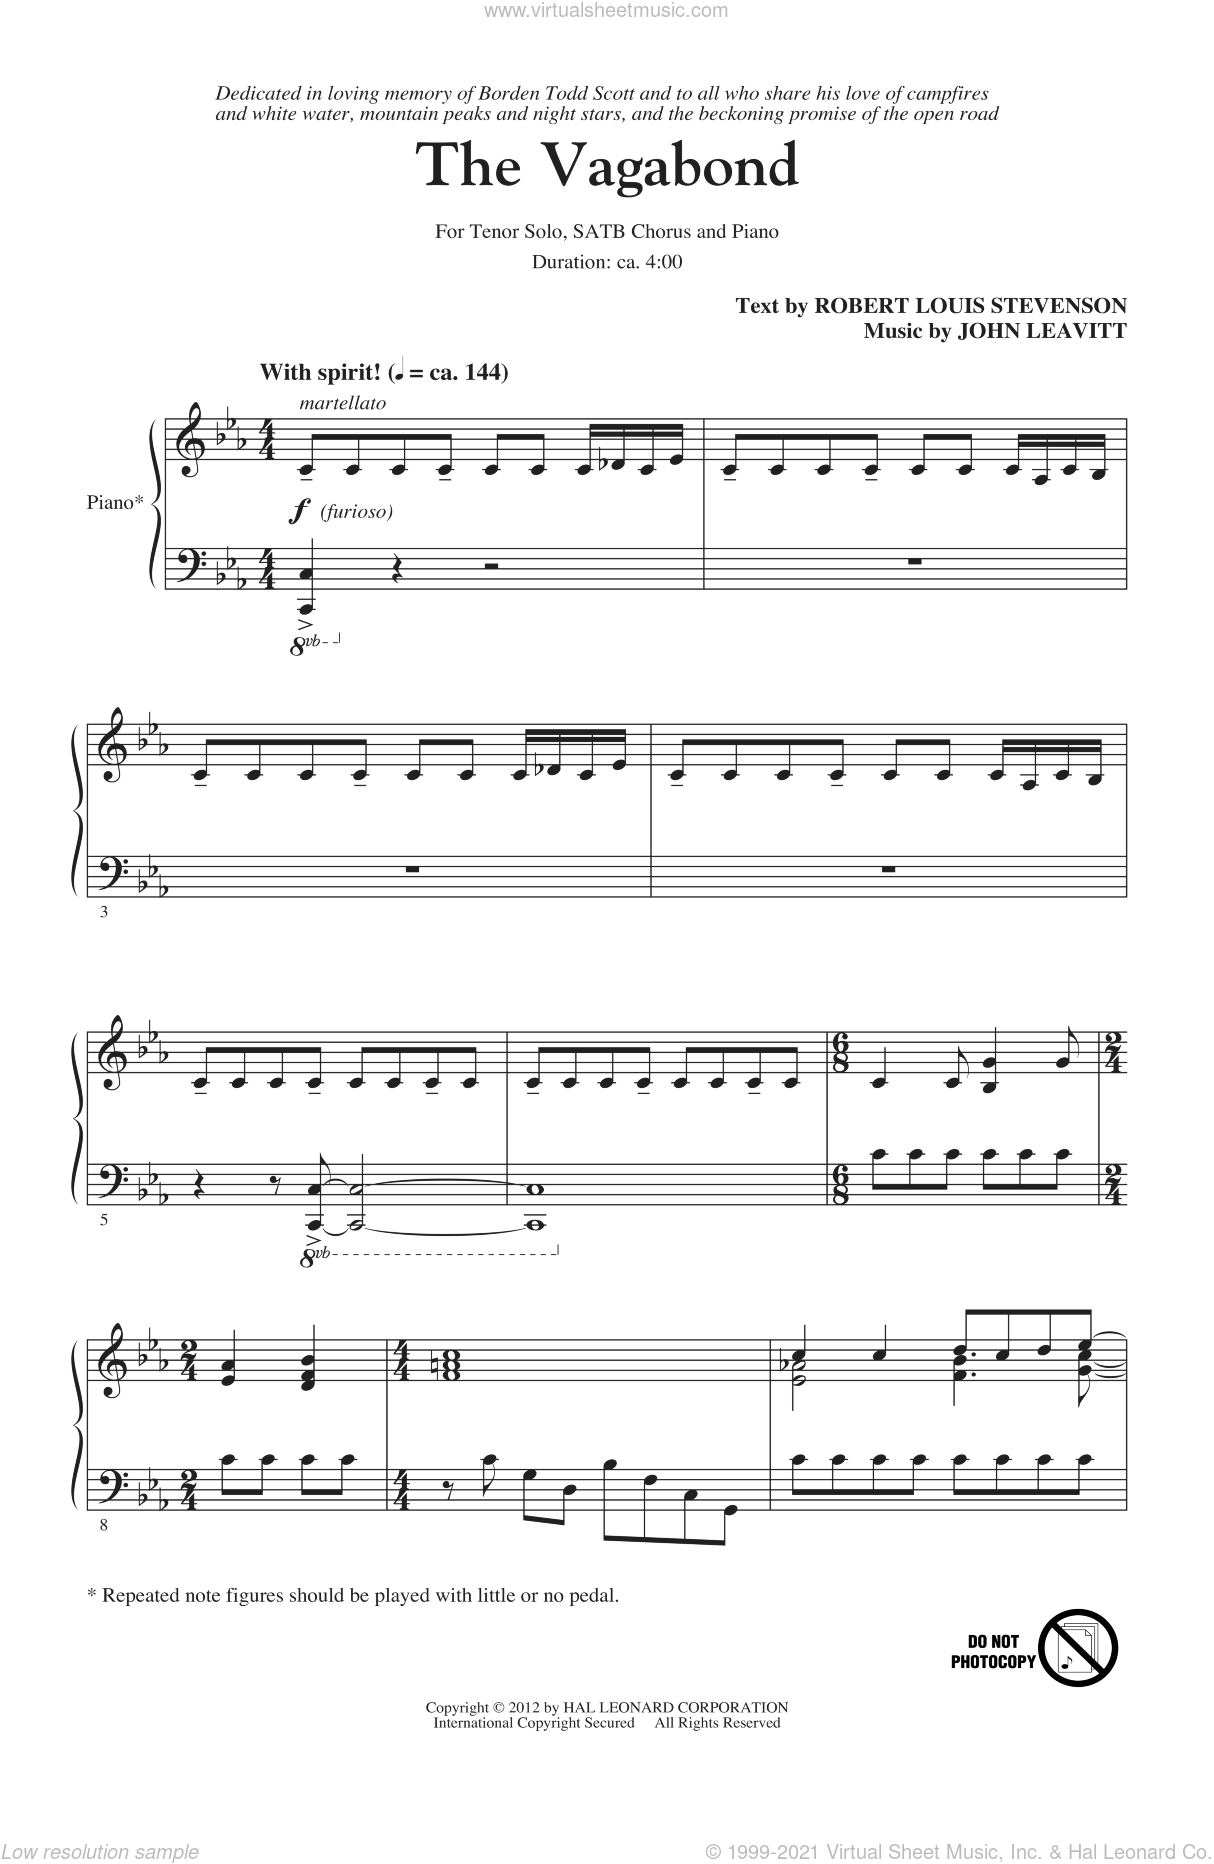 The Vagabond sheet music for choir and piano by Robert Louis Stevenson